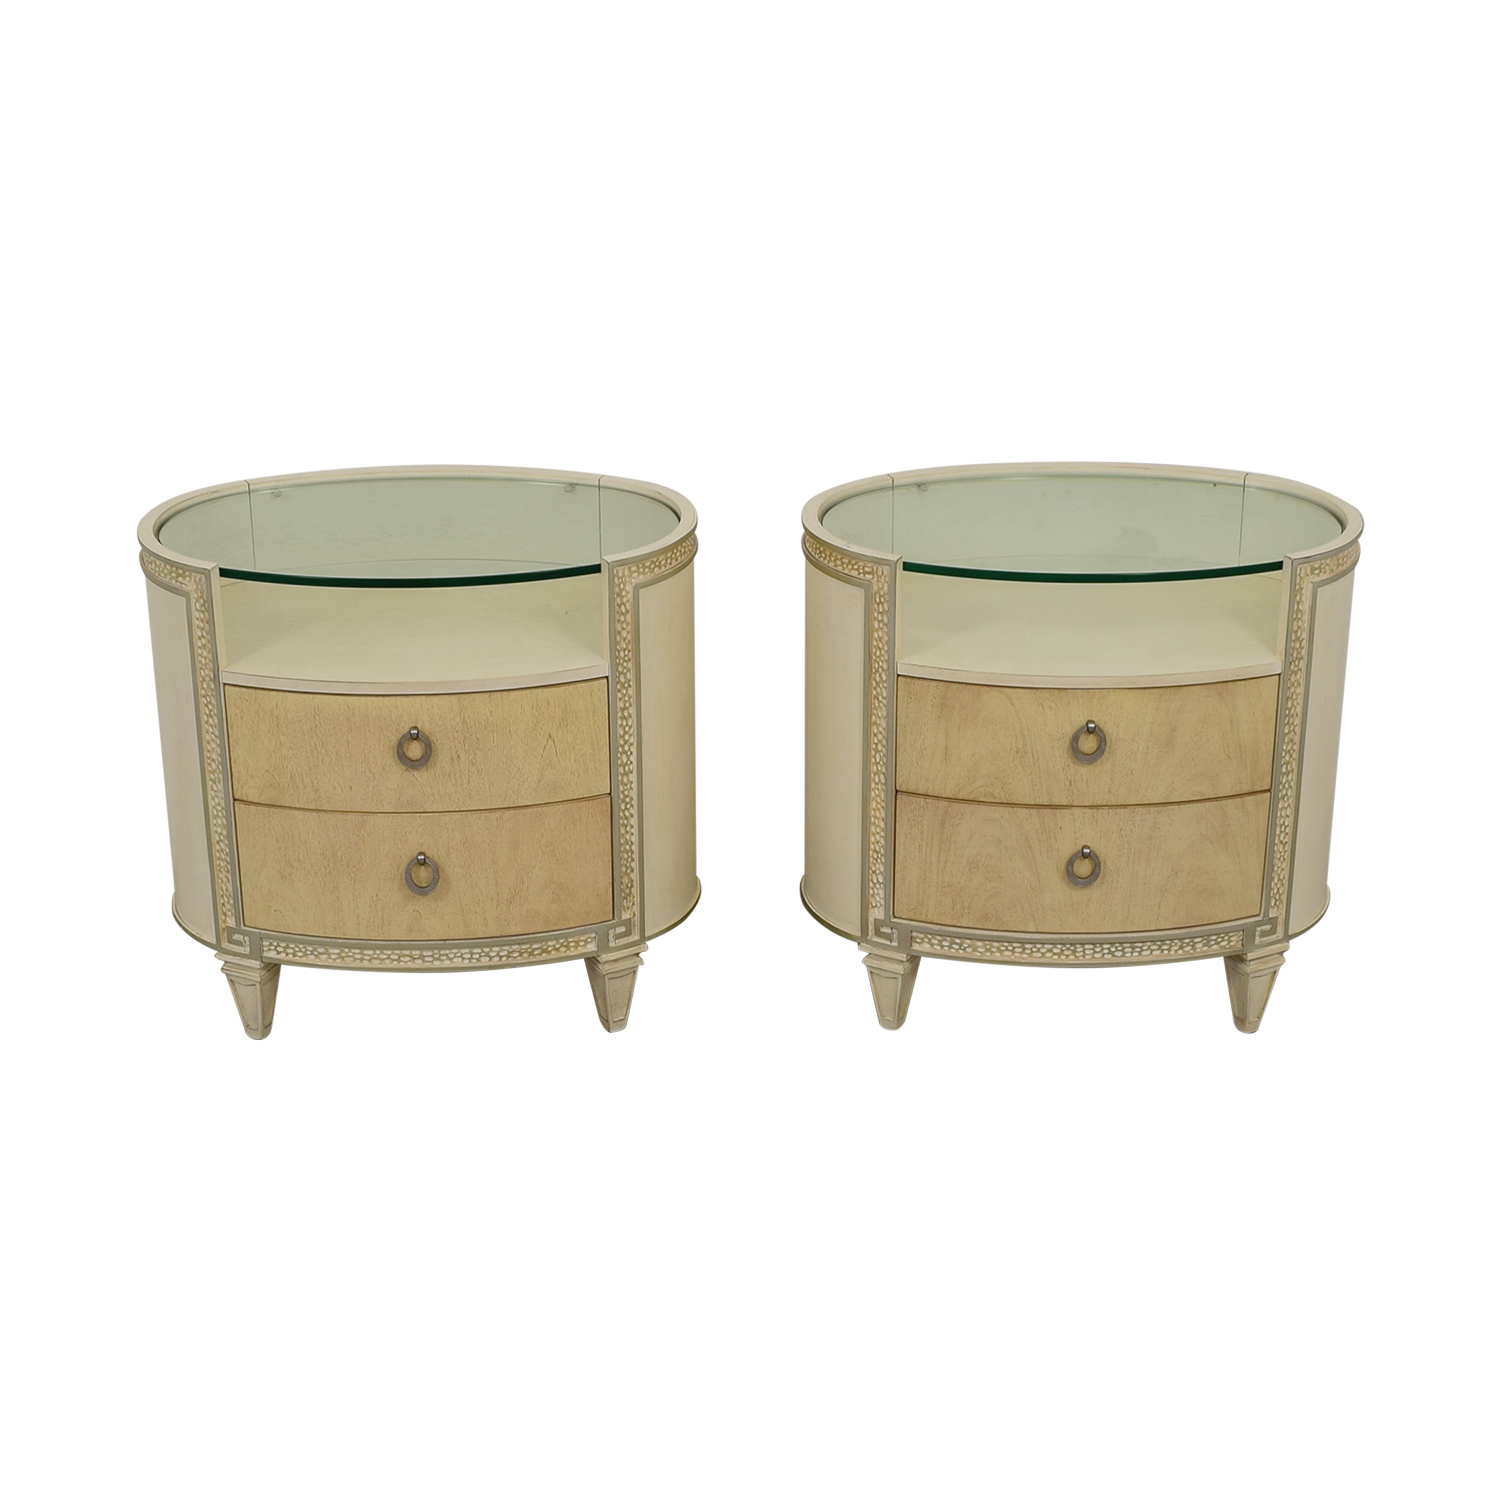 90 Off Schnadig Compositions Carlton Cream And Glass Oval Two Drawer Nightstands Tables